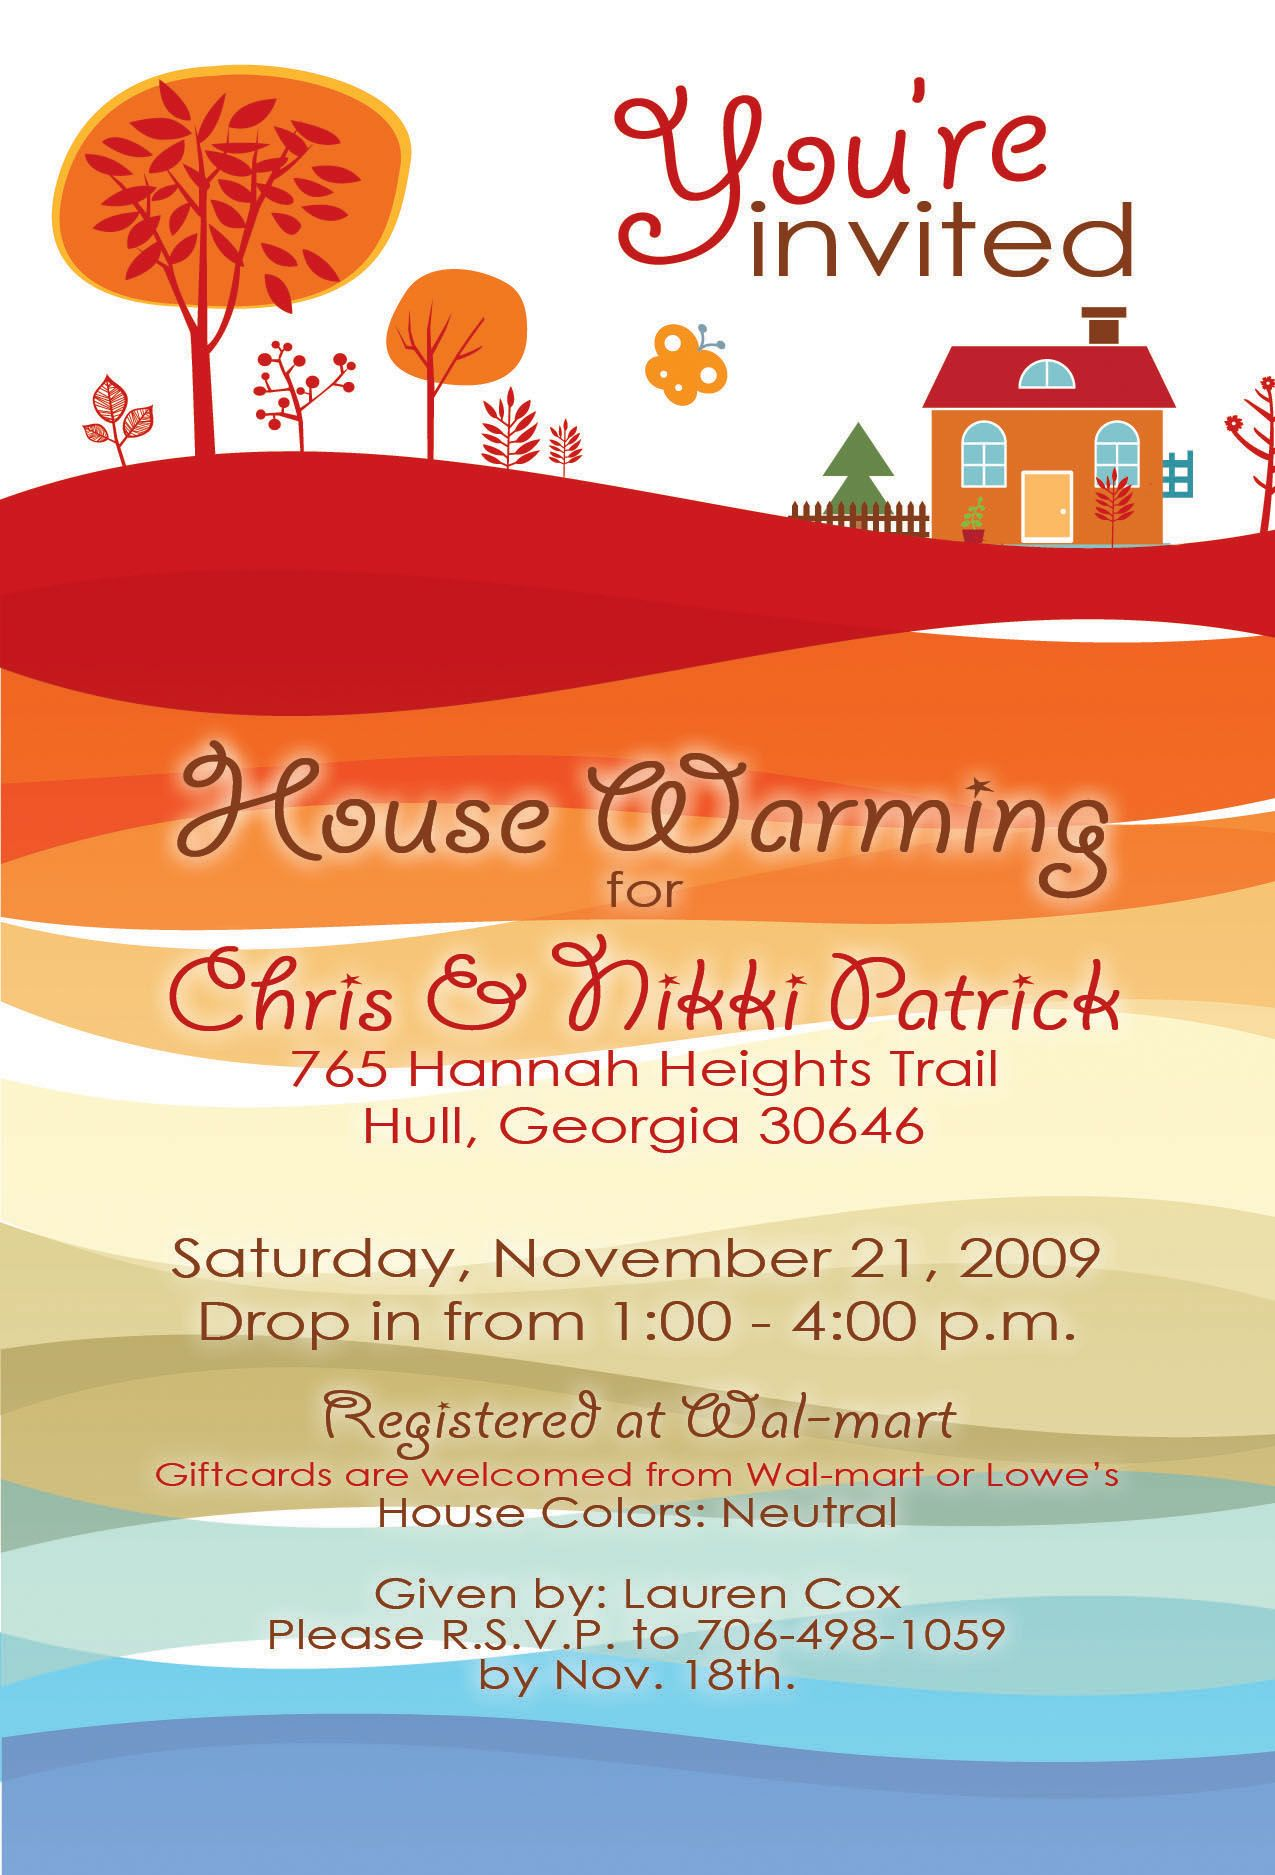 Sample house warming invitation house warming invitation designs sample house warming invitation house warming invitation designs by lauren cox stopboris Image collections